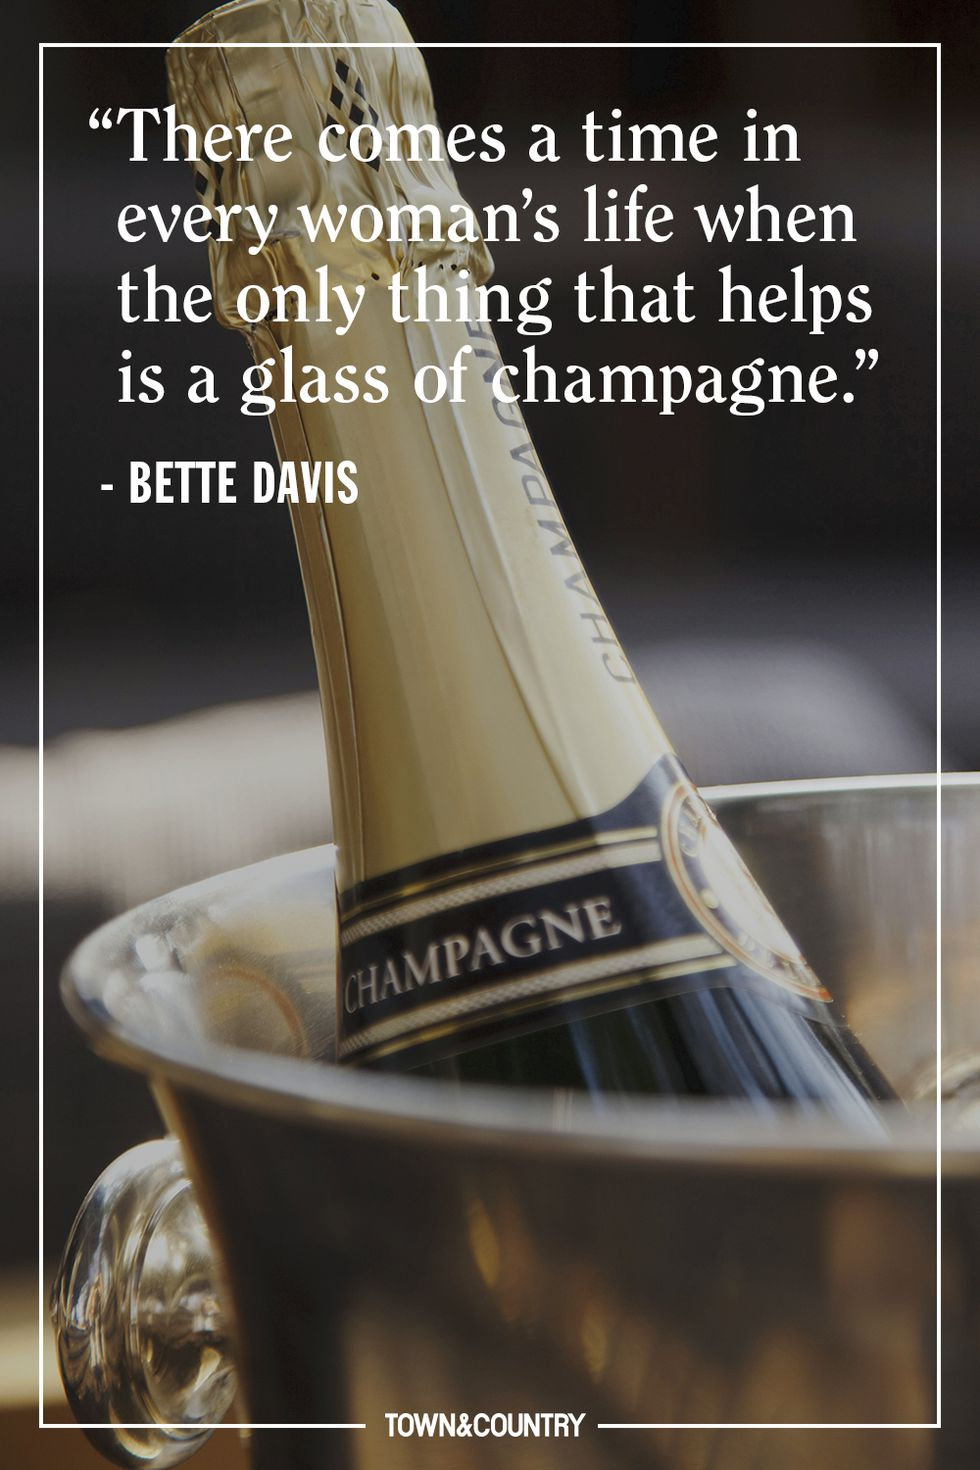 champagne - I know I don't need to tell you againhow real the love of champagne is over here, but just in case you forgot, these 10 quotes will have you going to pick up some bubbly and toasting the greats.